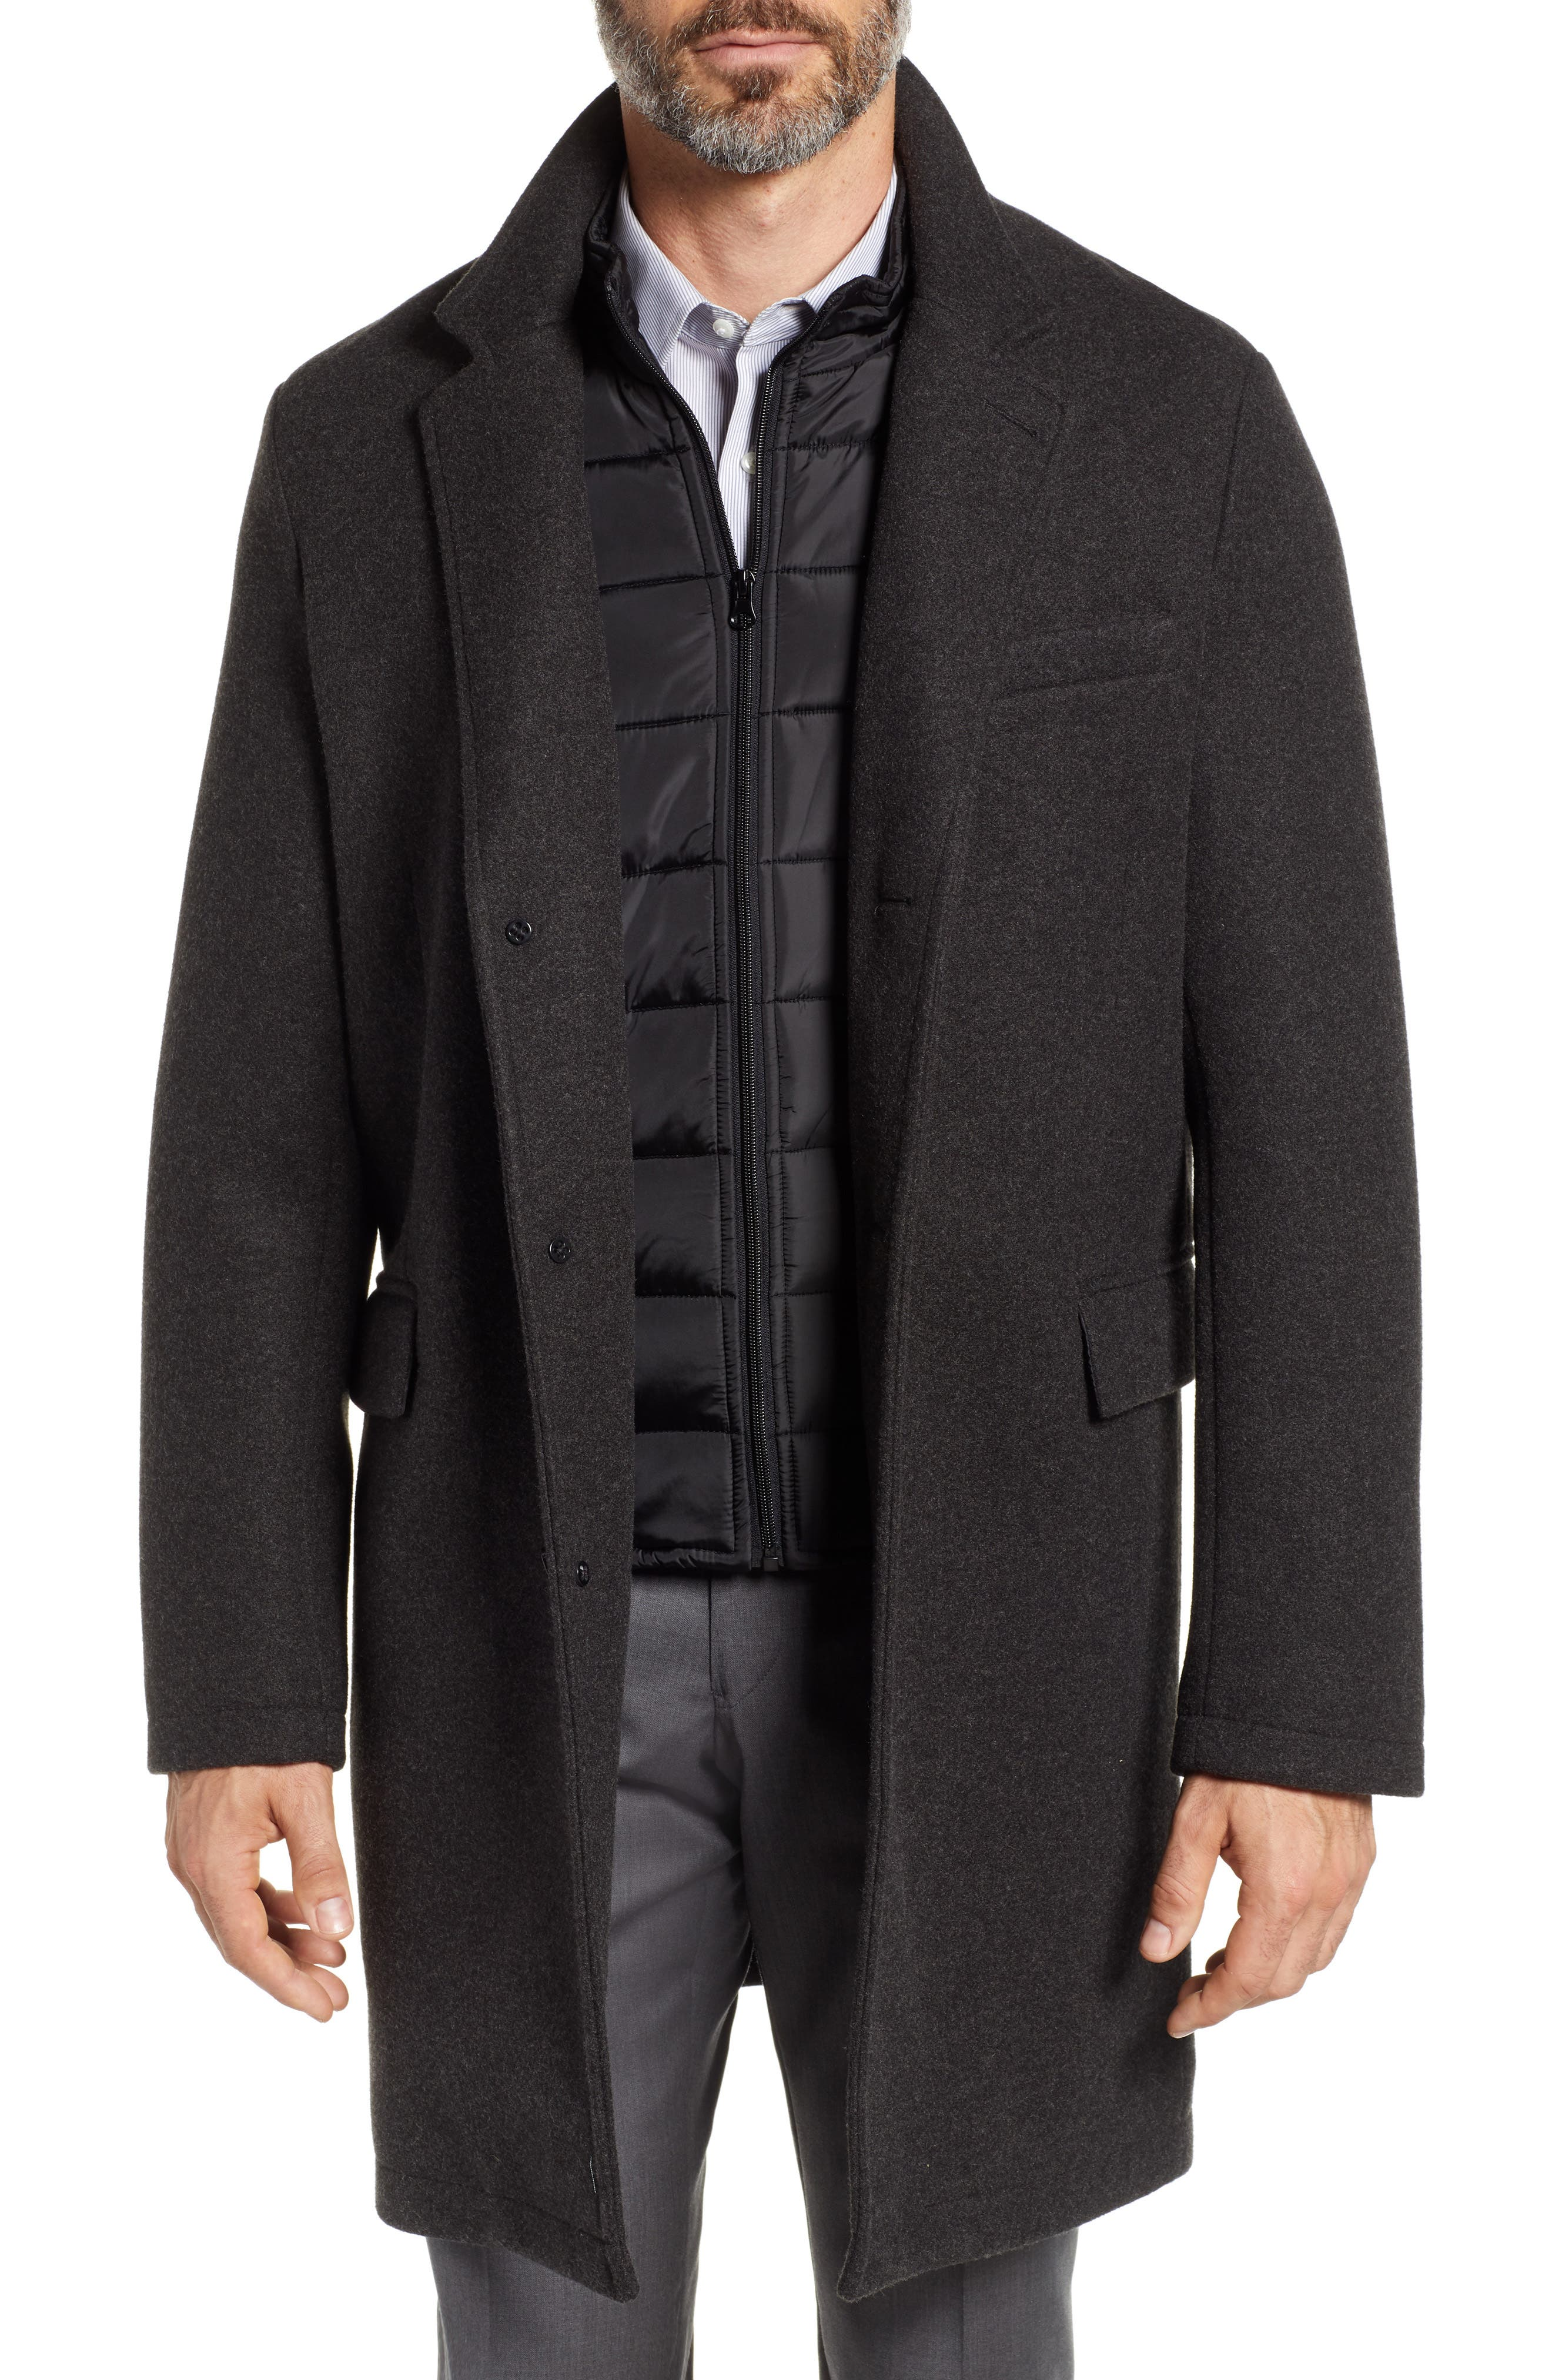 Cunningham Quilted Bib Inset Topcoat,                             Main thumbnail 1, color,                             CHARCOAL